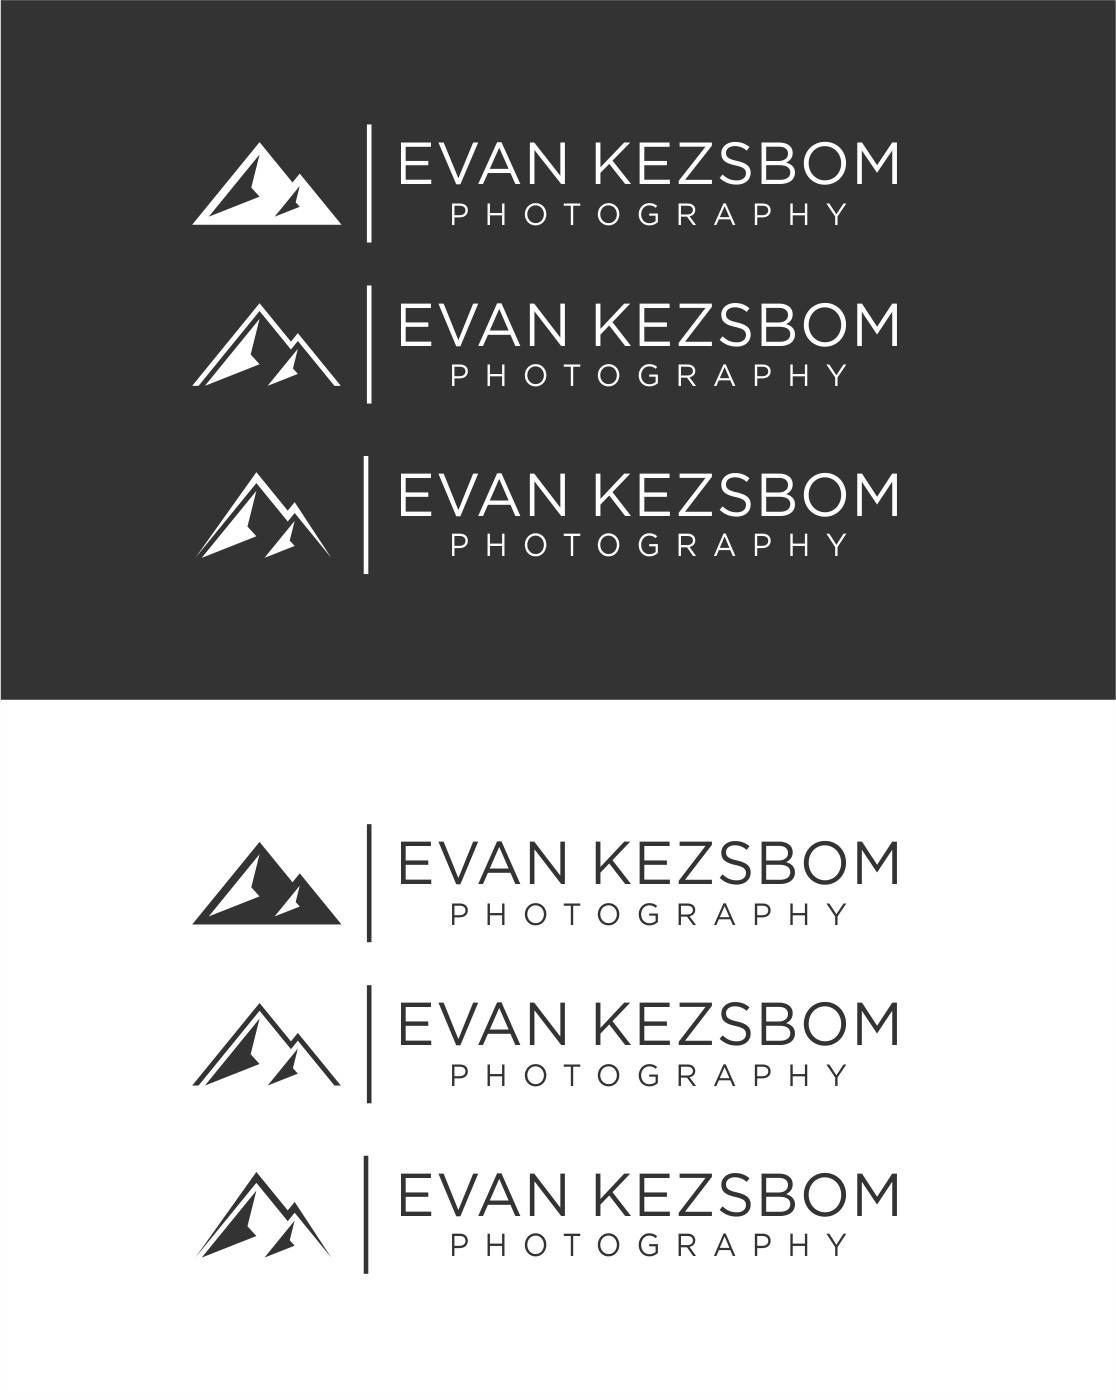 Design a clean, contemporary logo for a photographer based in a mountain town community